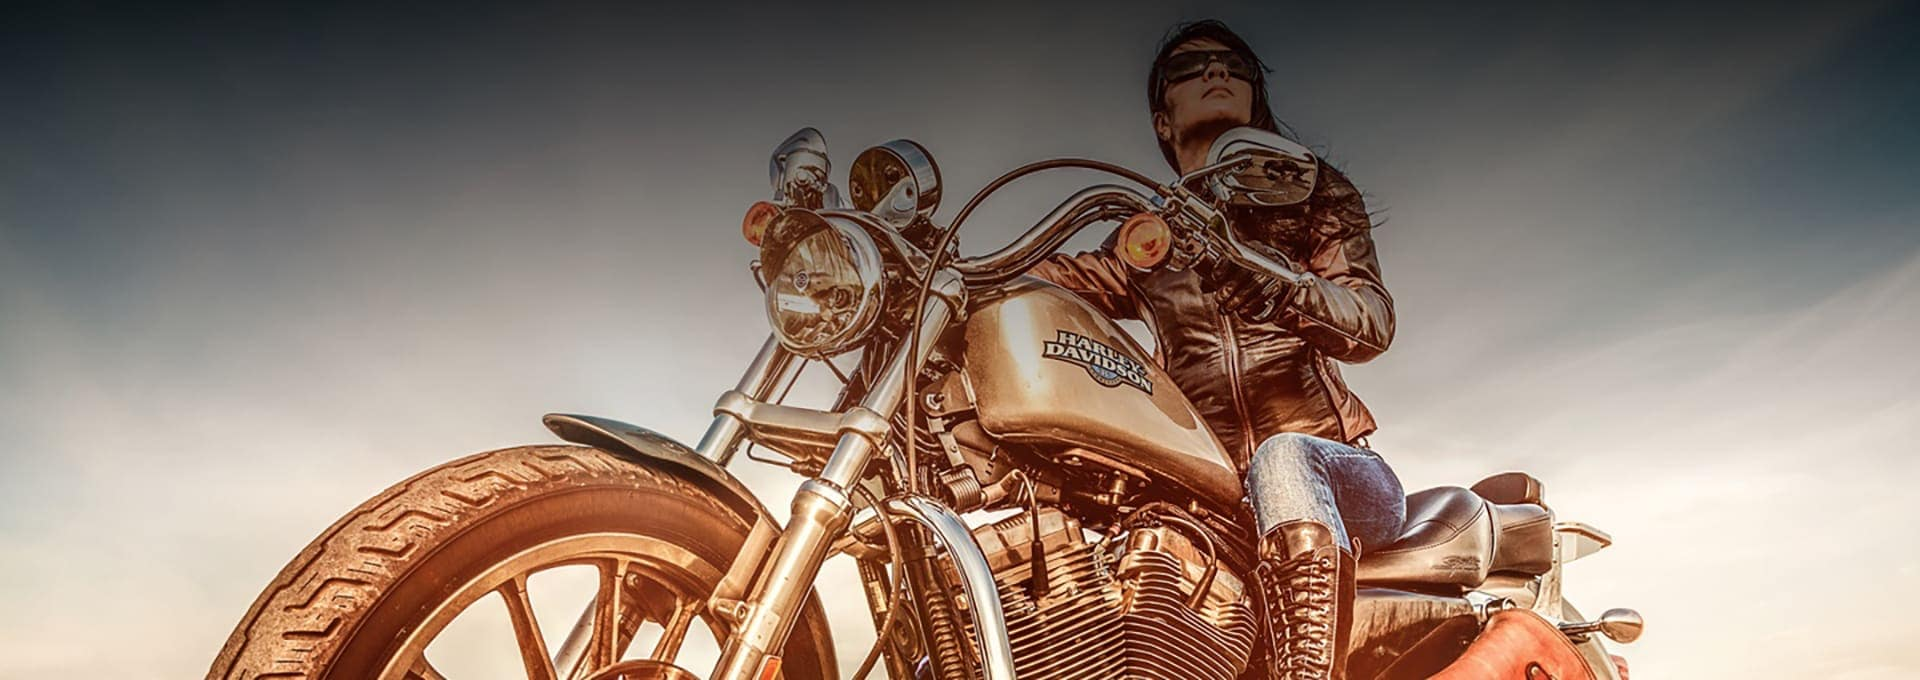 Woman on a harley davidson facing the sunset